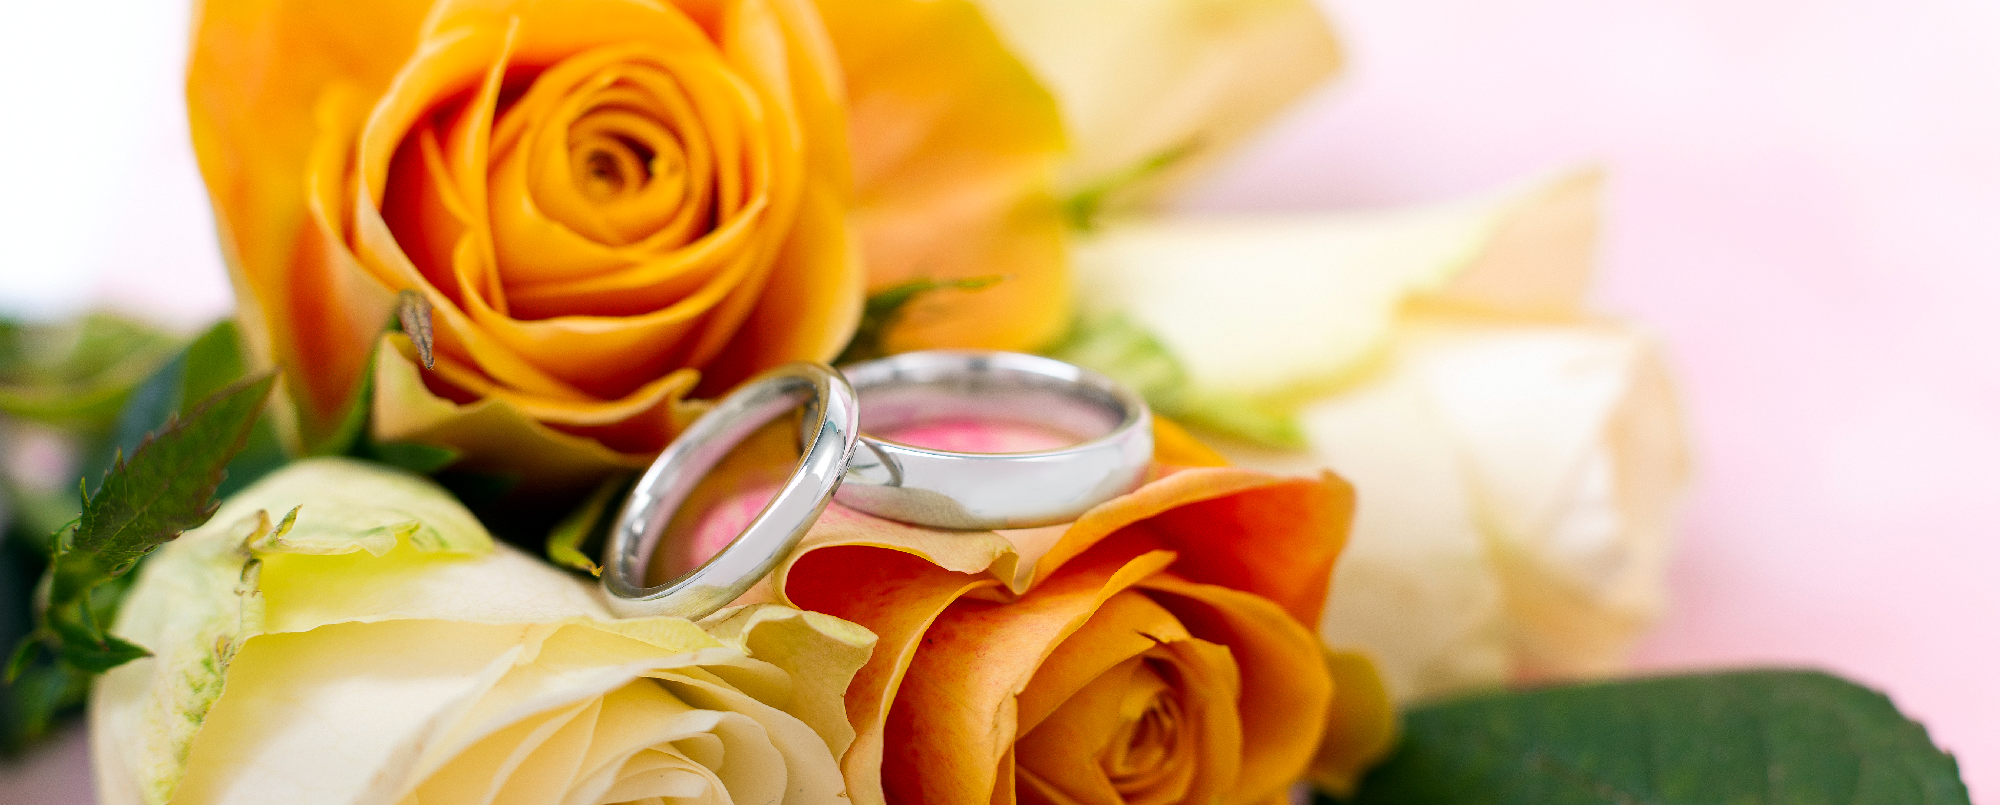 Your complete guide to buying wedding rings